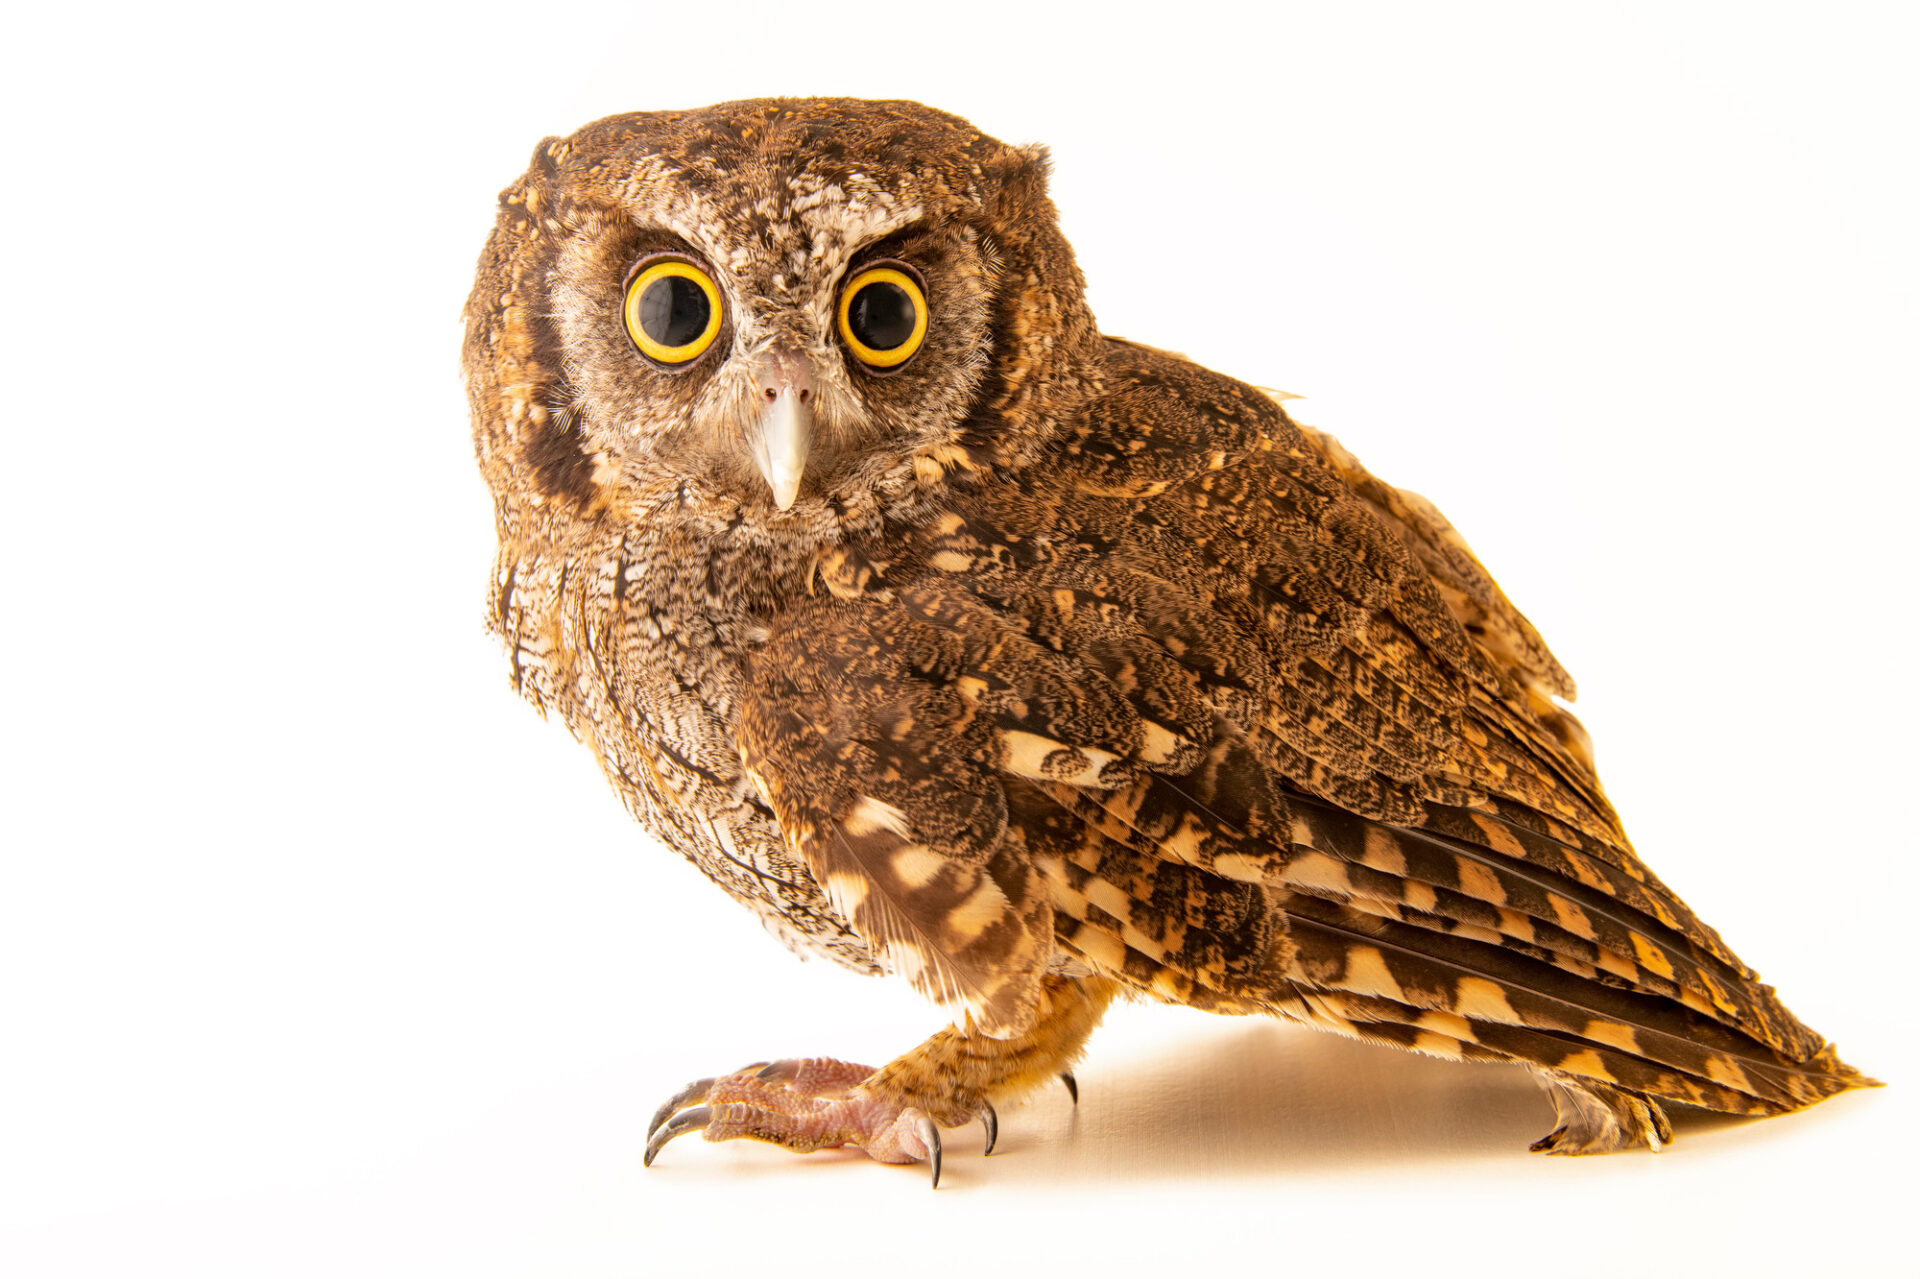 Photo: A tropical screech owl (Megascops choliba decussatus) at Cetas-IBAMA, a wildlife rehab center in Manaus, Brazil.